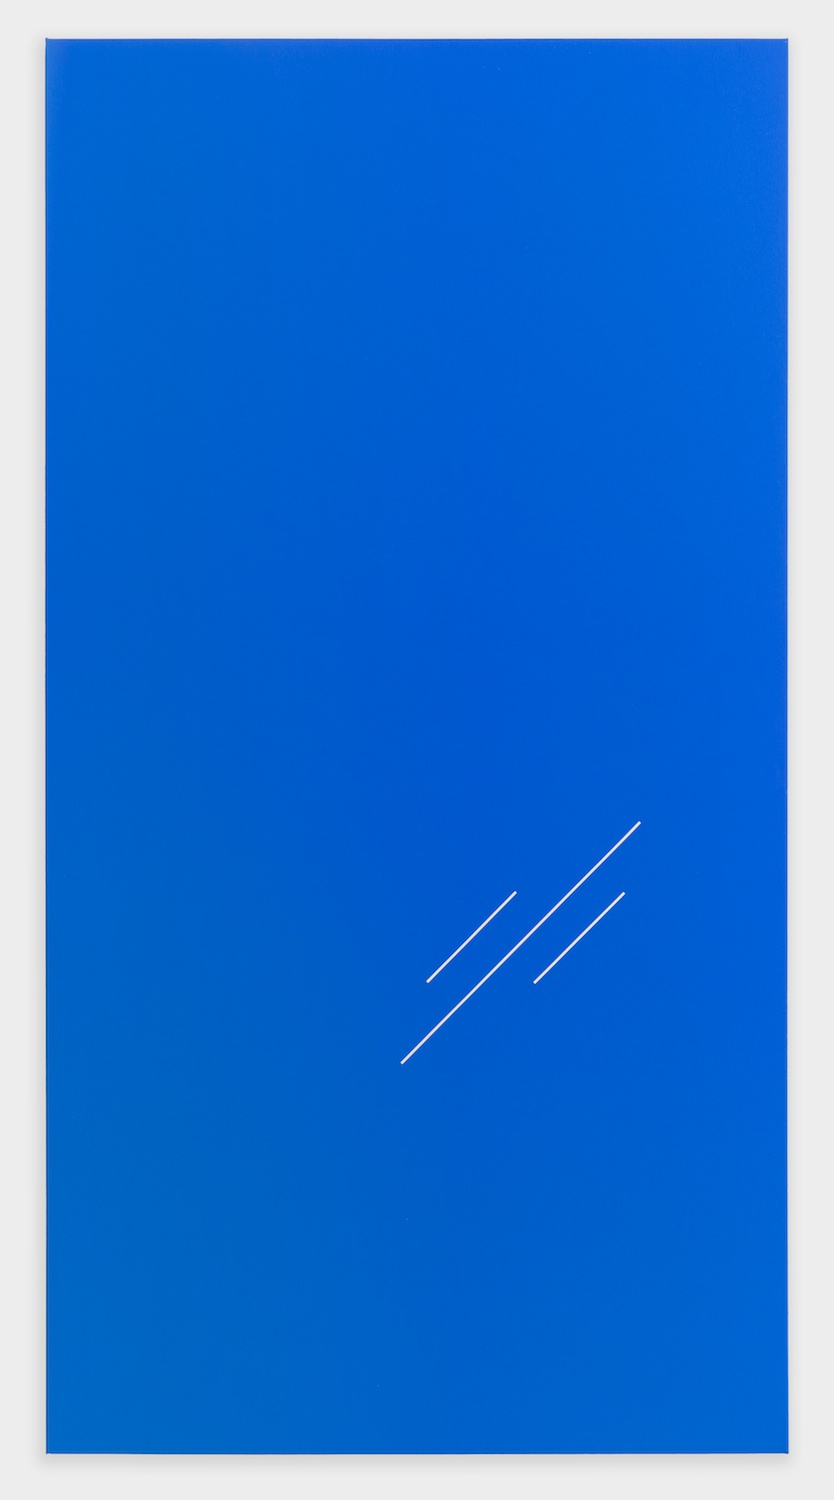 "Paul Cowan BCEAUSE THE SKY IS BULE 2013 Chroma-key blue paint on canvas 78"" x 41"" PC083"